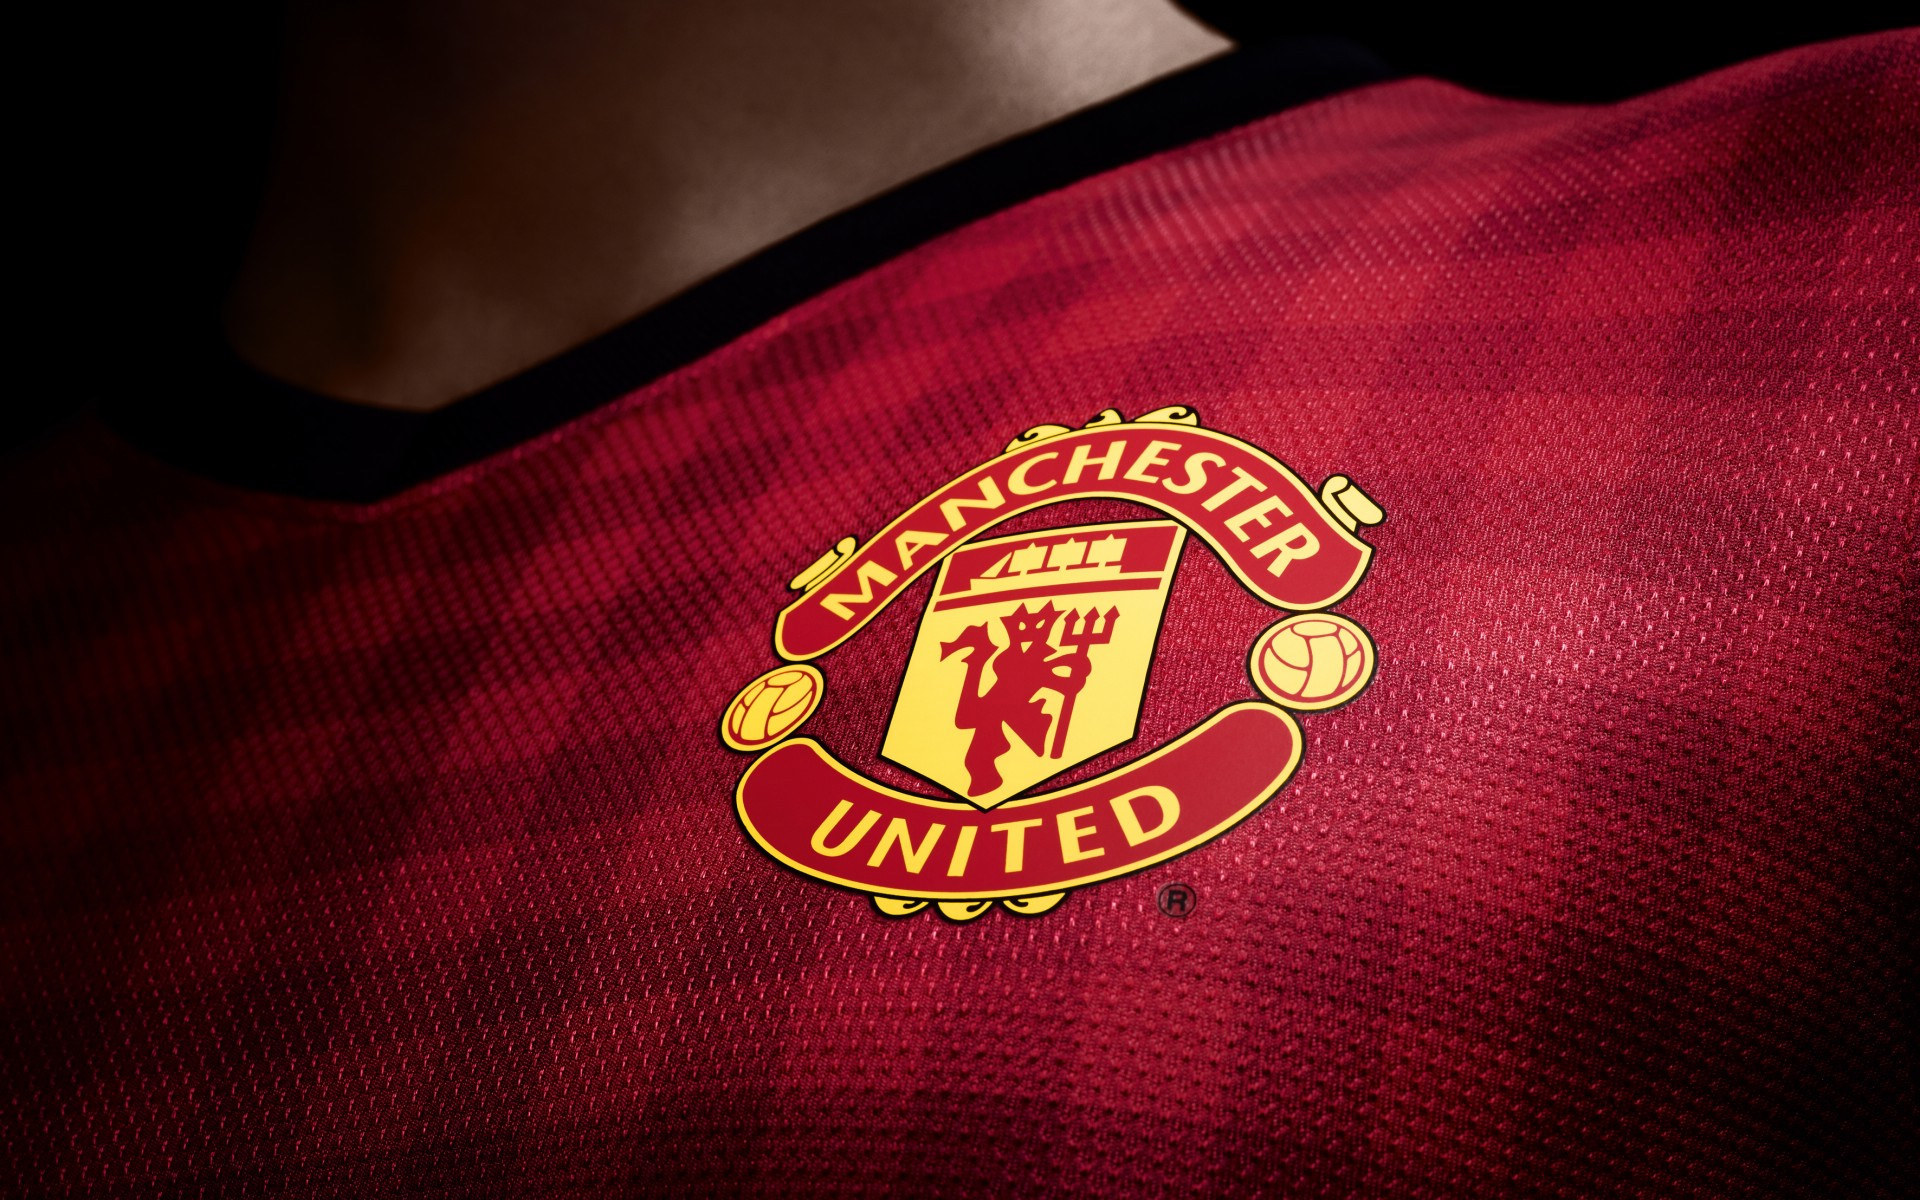 Manchester United new jersey for 2013-2014